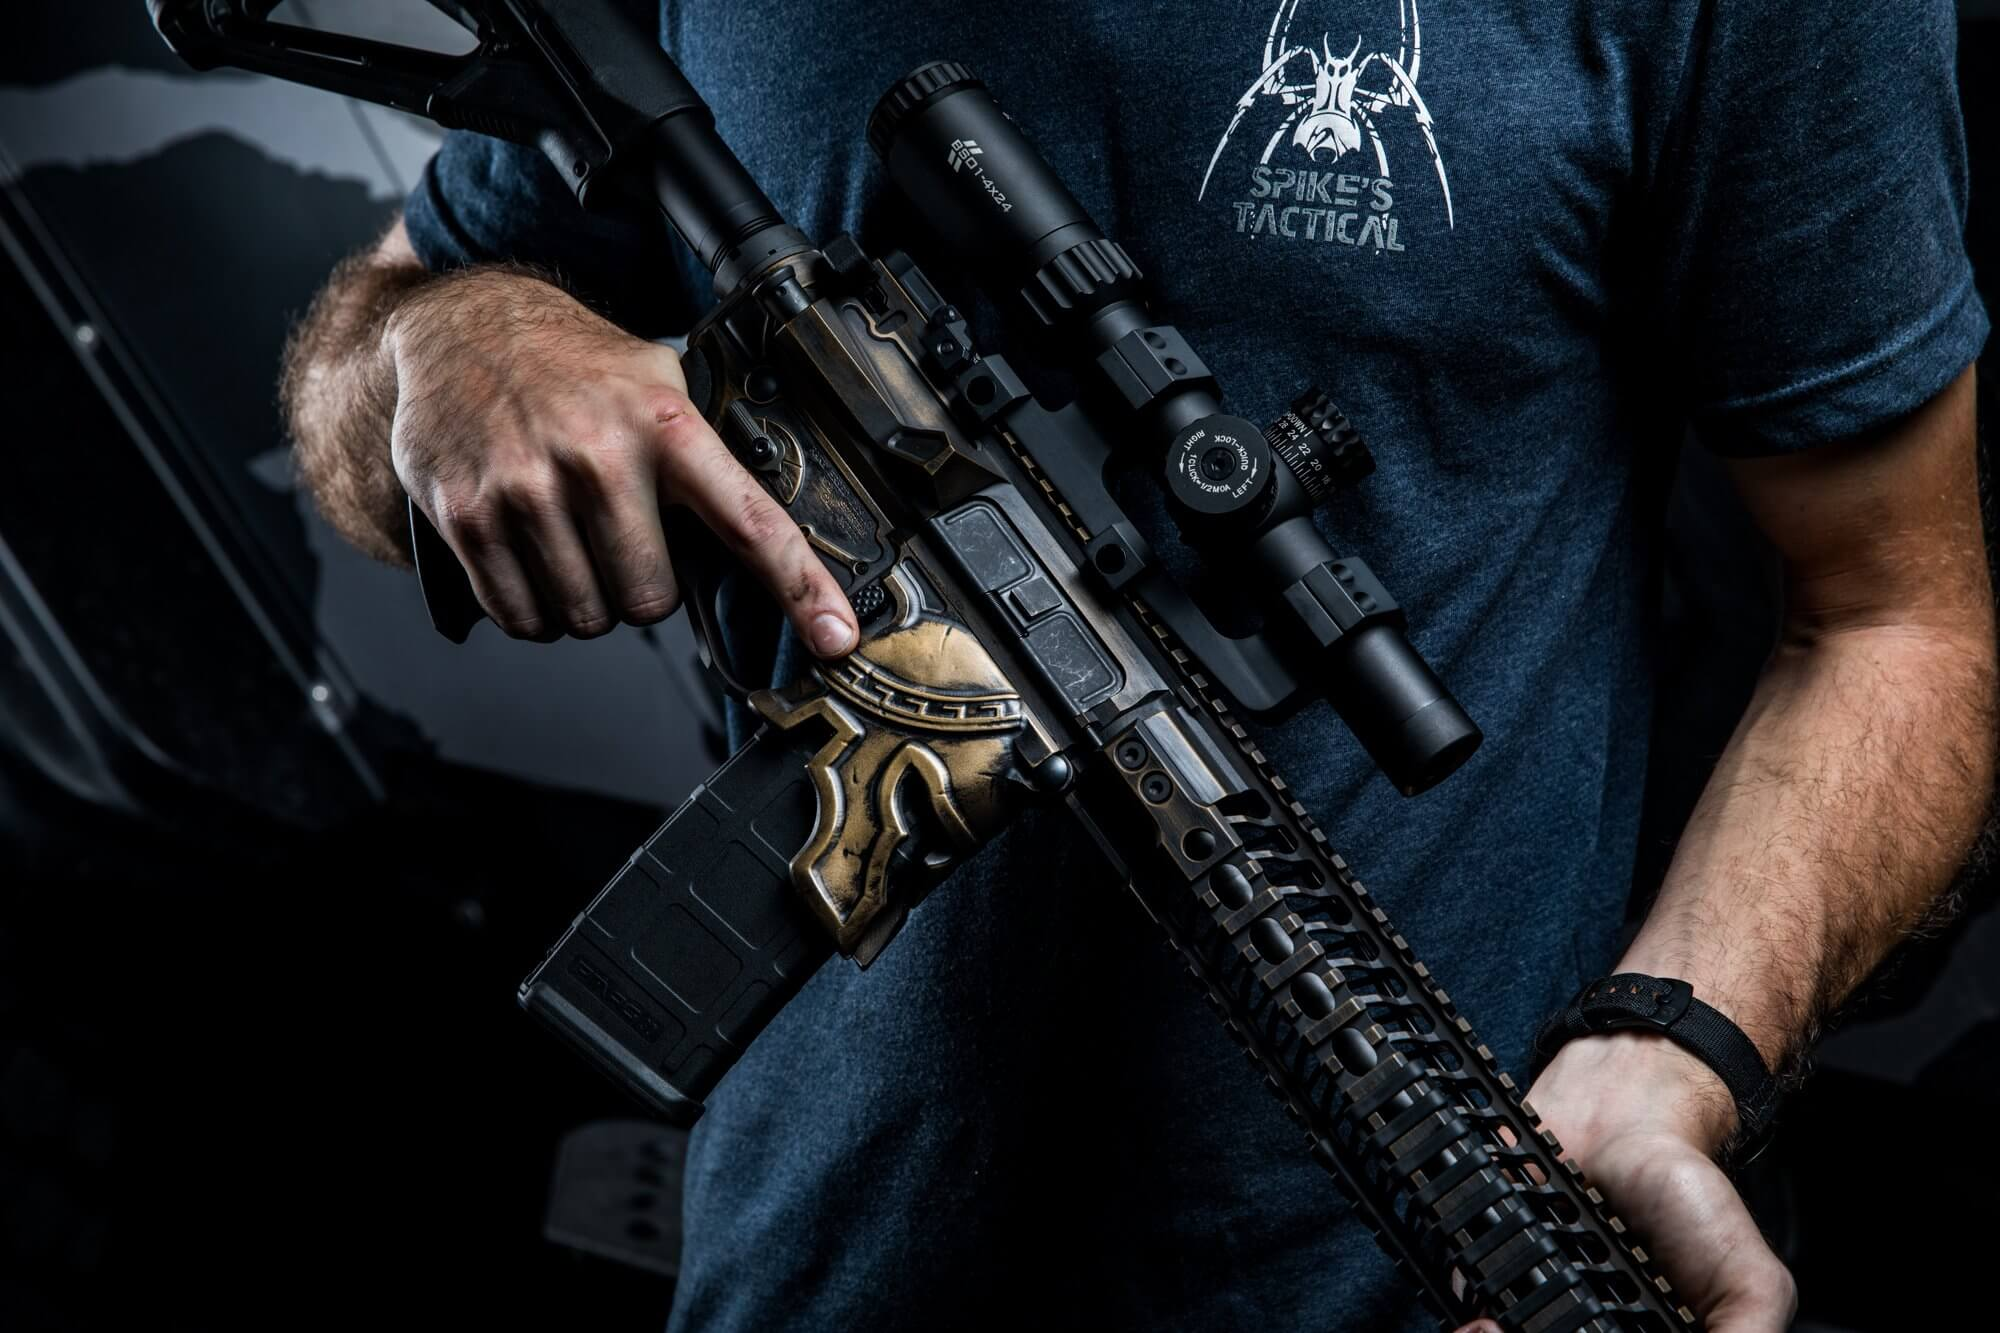 Long-awaited Spike's Tactical 3D AR-15 Spartan helmet lower receiver to go on sale Friday